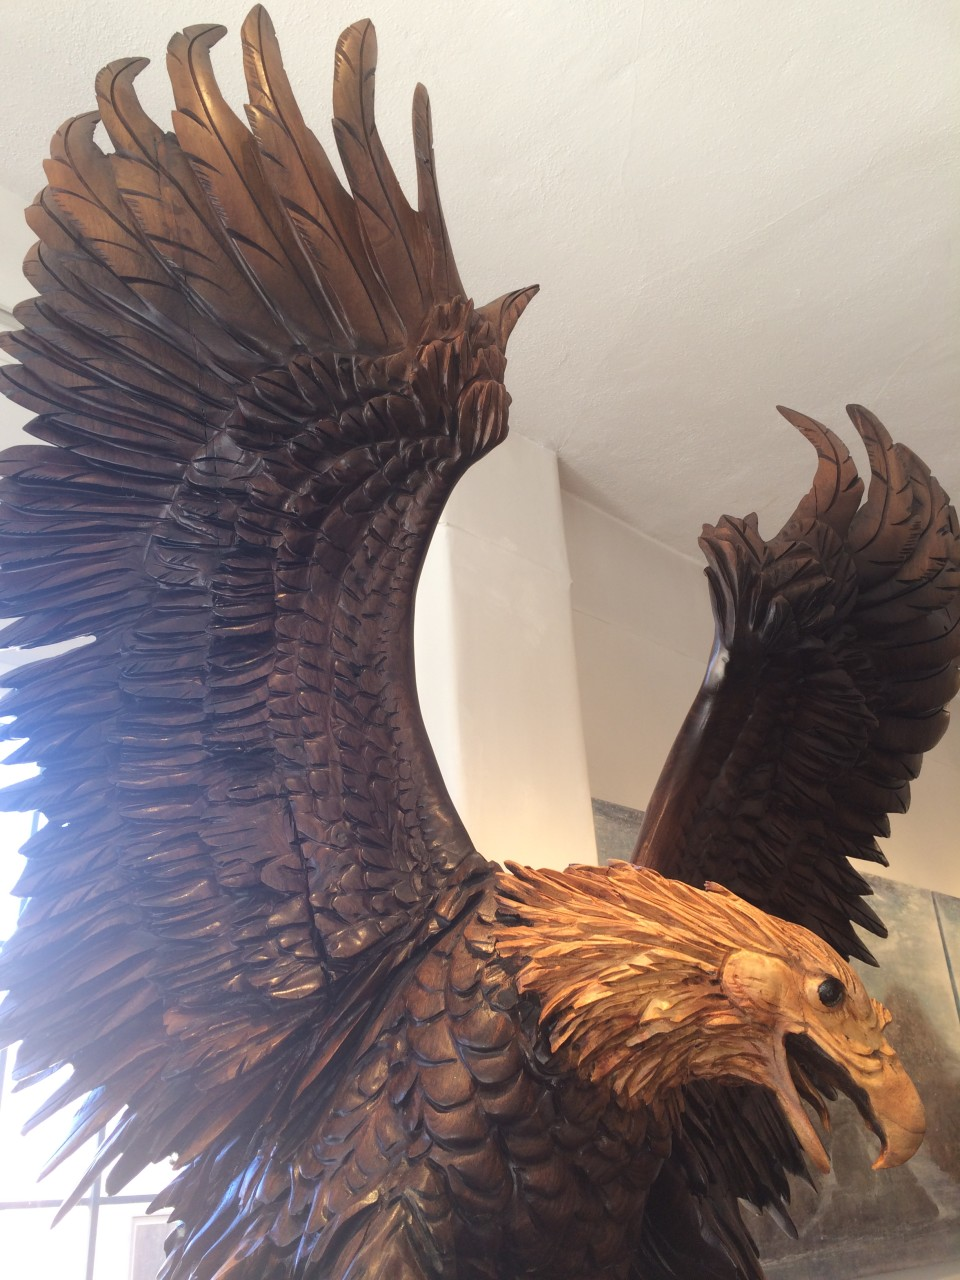 "Wings of Thunder 114"" x 48"" x 48"" black walnut  (detail)"